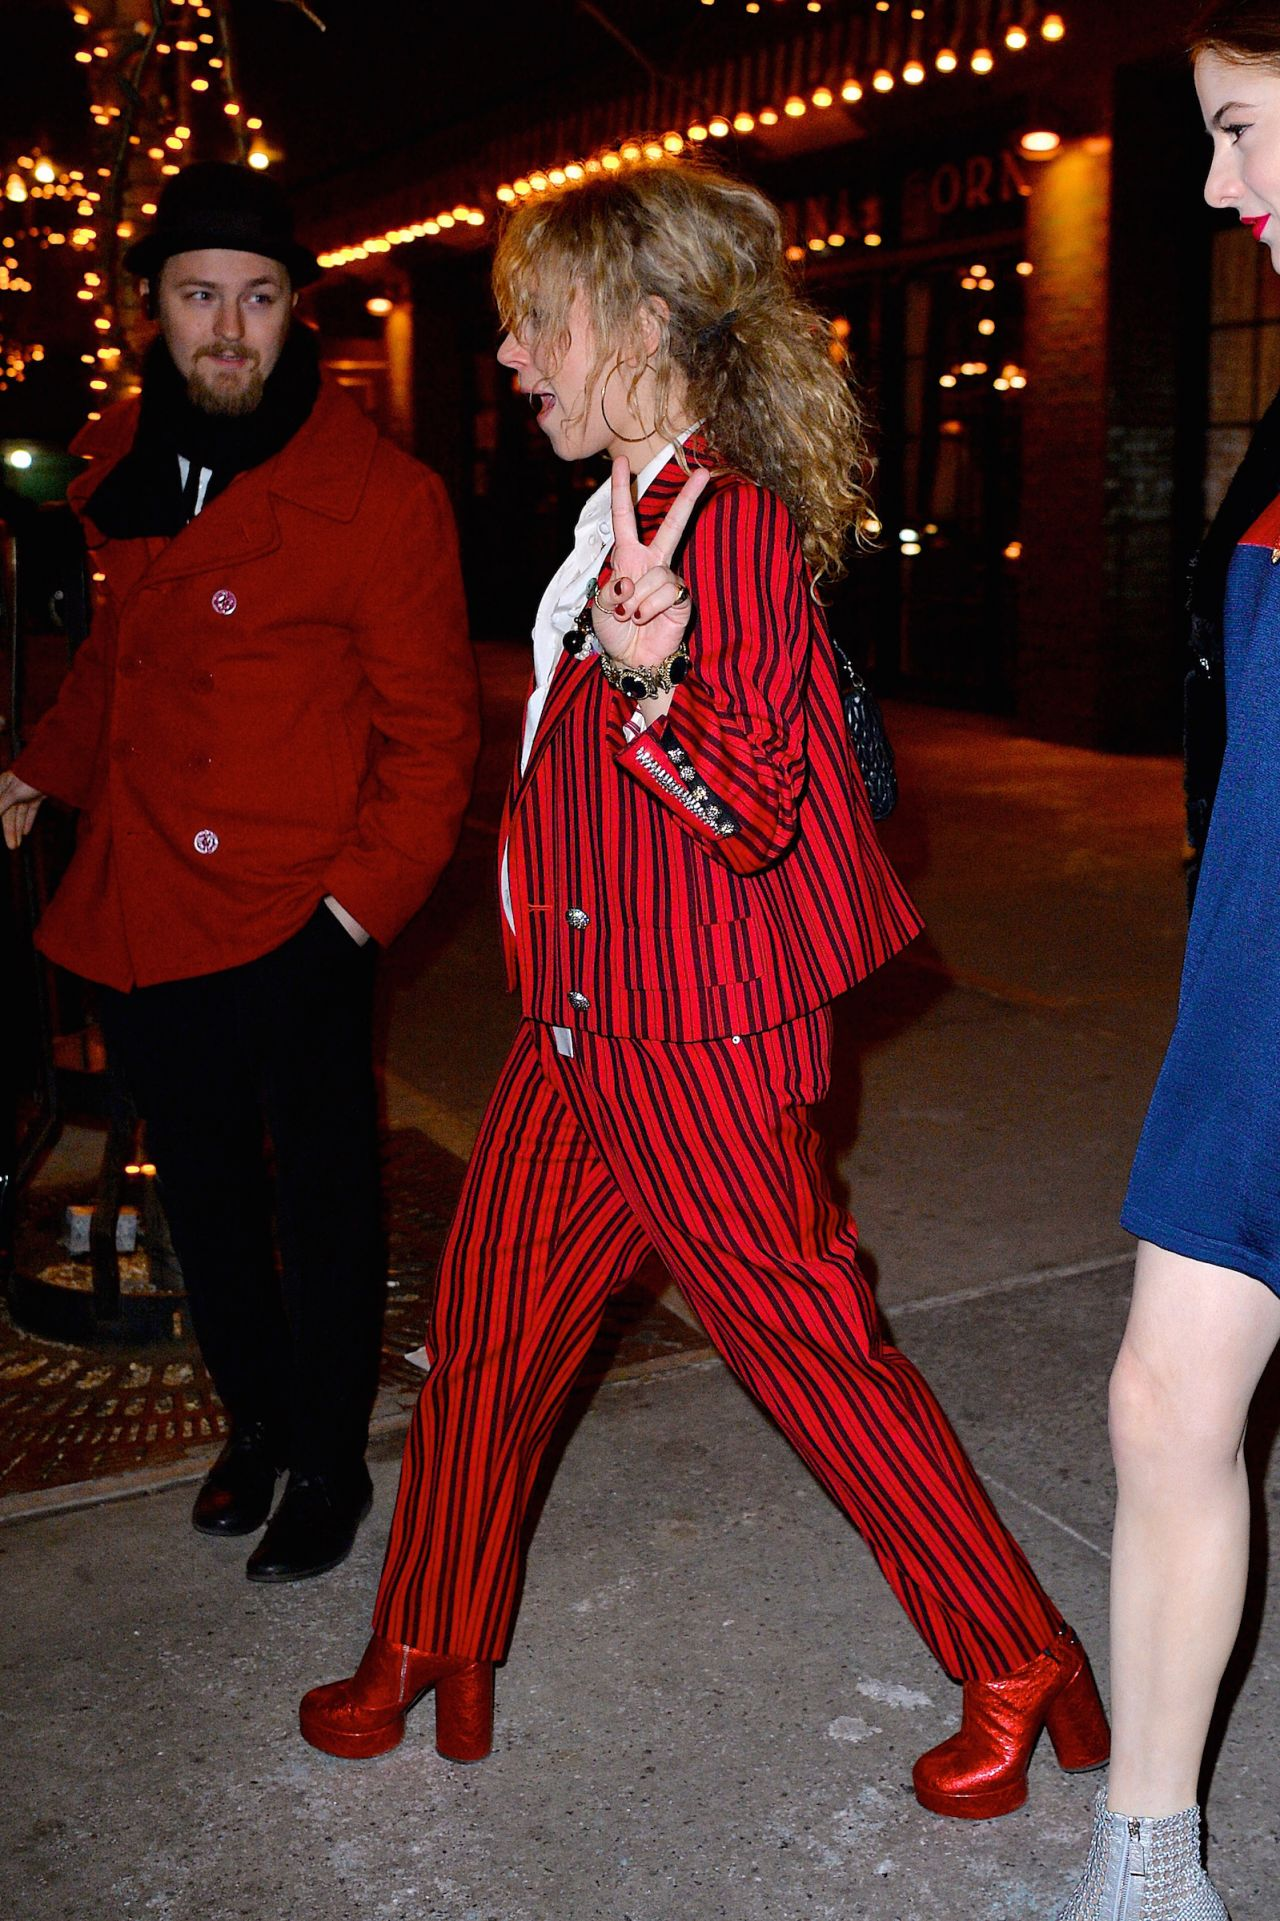 juno-temple-and-emily-tremaine-step-out-together-to-attend-marc-jacob-s-event-at-the-hotel-wolcott-in-new-york-11